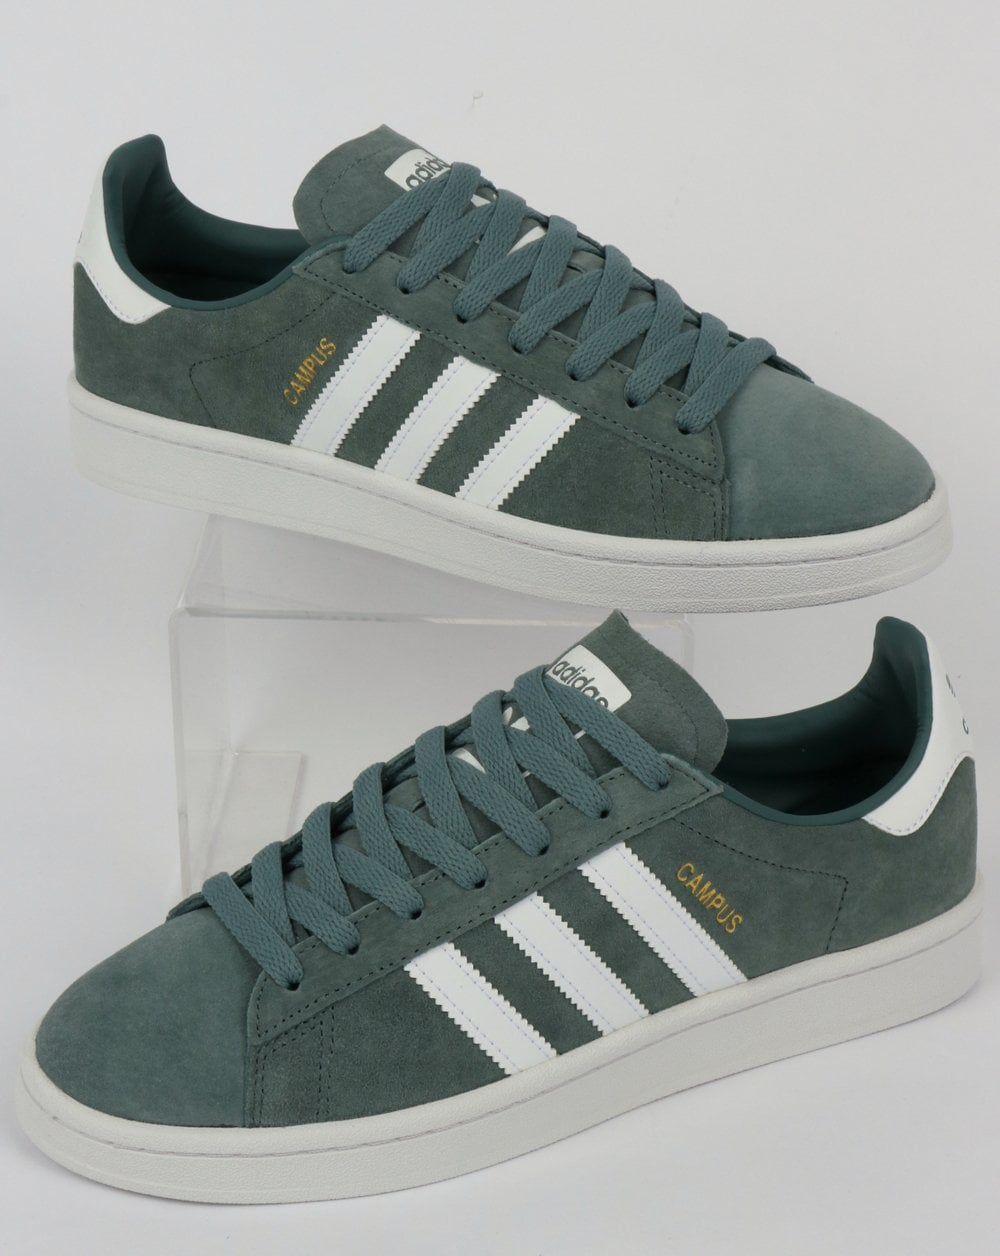 Adidas Campus S Green Shoes